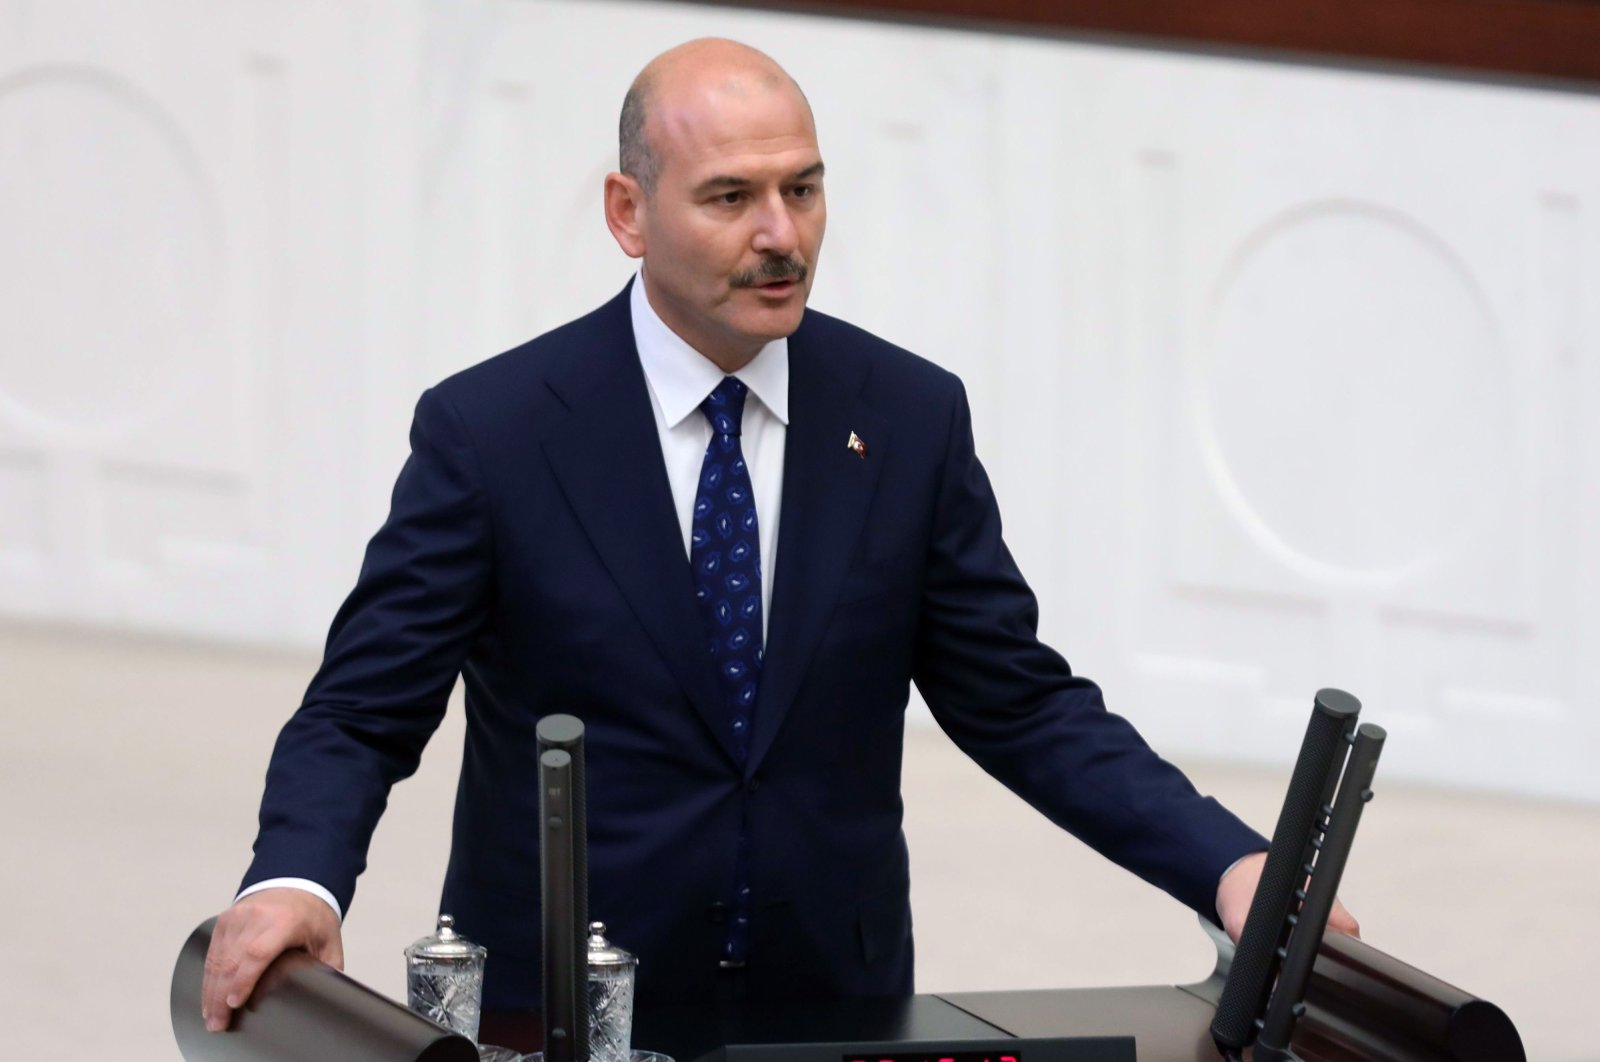 Interior Minister Suleyman Soylu is sworn in at the Grand National Assembly of Turkey (TBMM) in Ankara, Turkey, July 10, 2018. (AFP Photo)